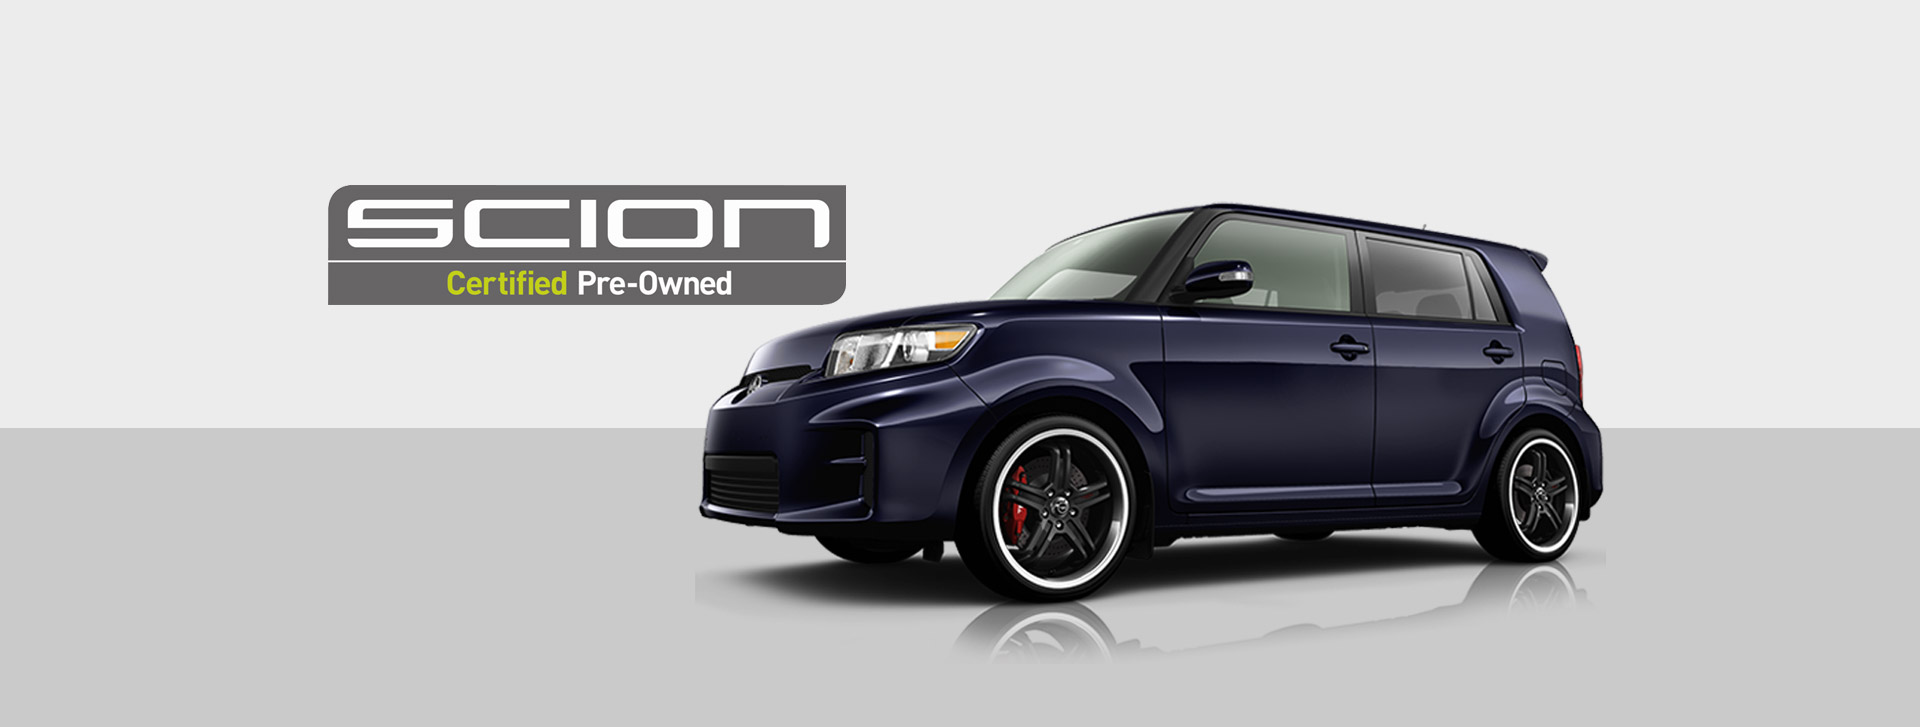 Scion Certified Pre-Owned